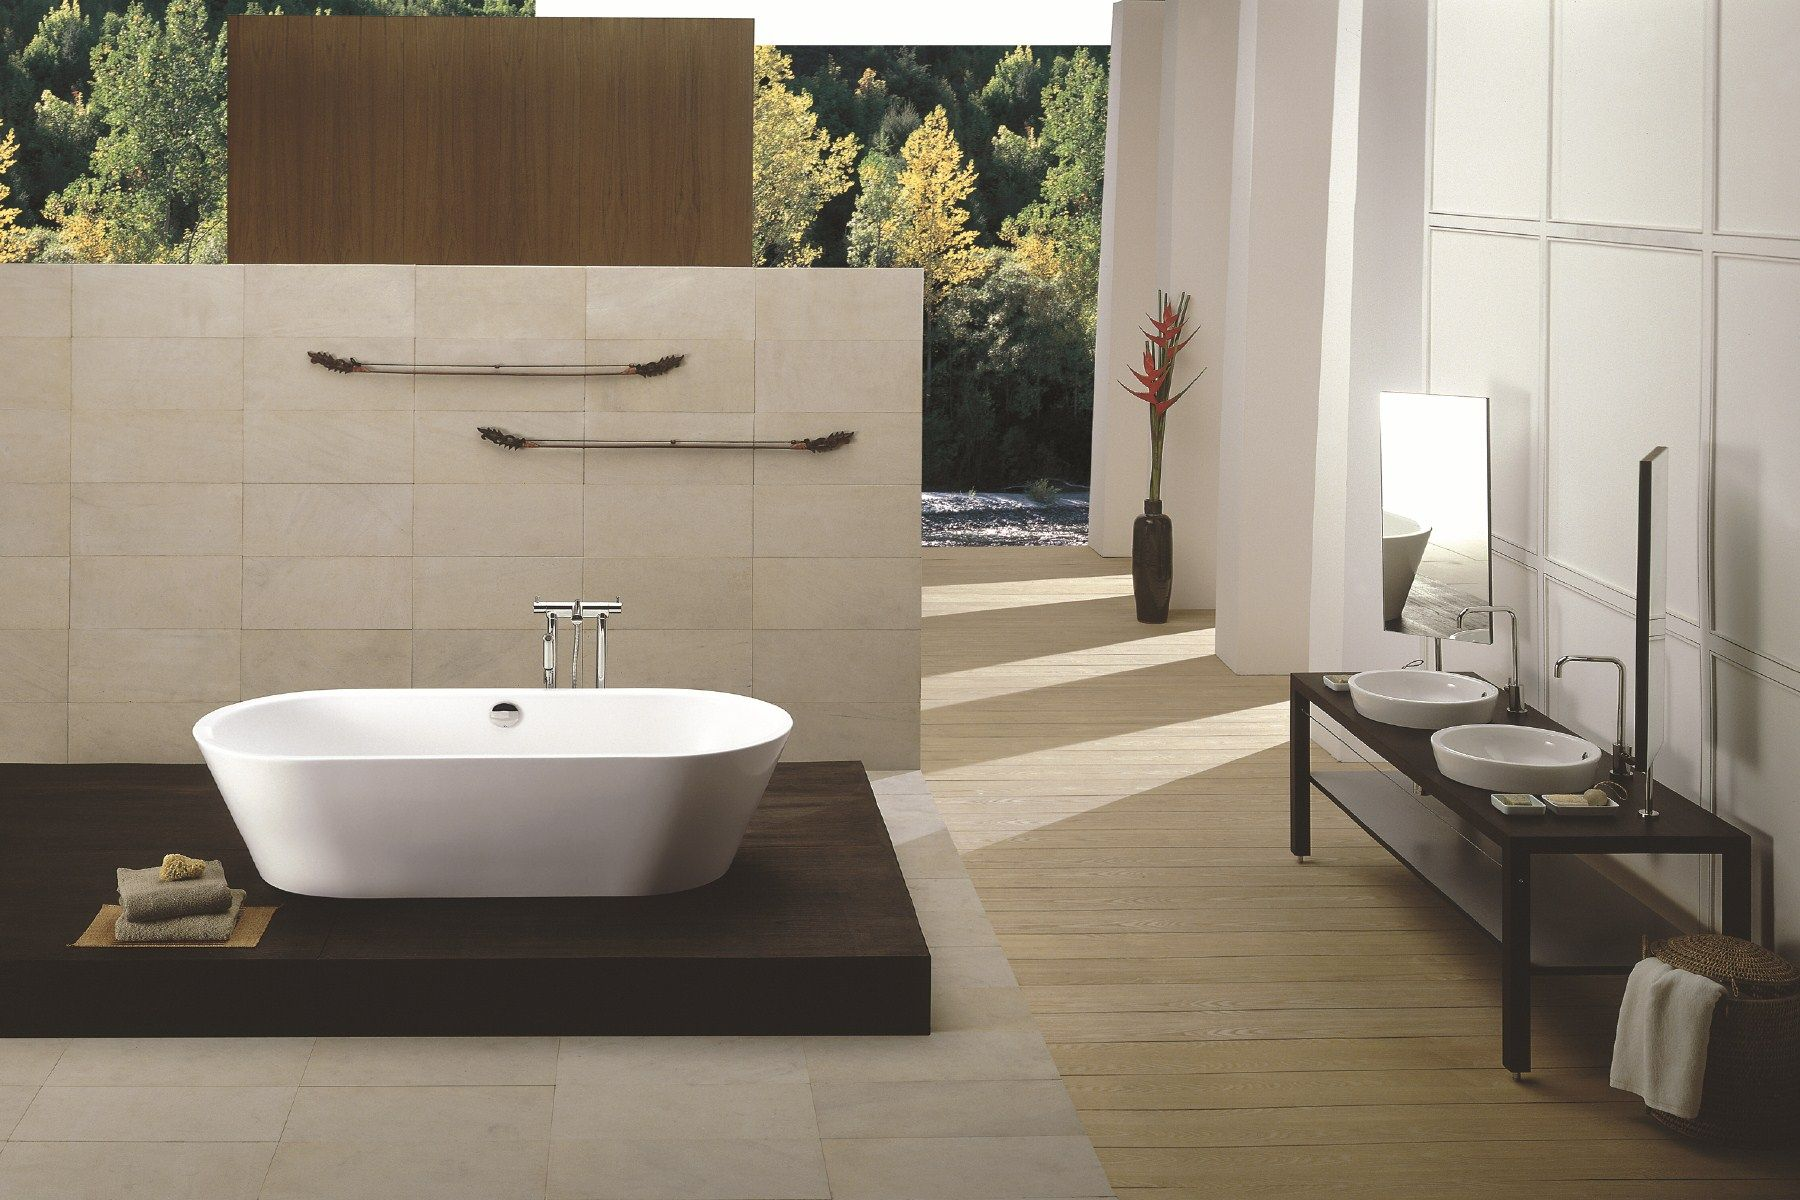 modern bathtubs  bedroom and living room image collections -  images about bathtub ideas for pikes peak on pinterest  imagesabout bathtub ideas for